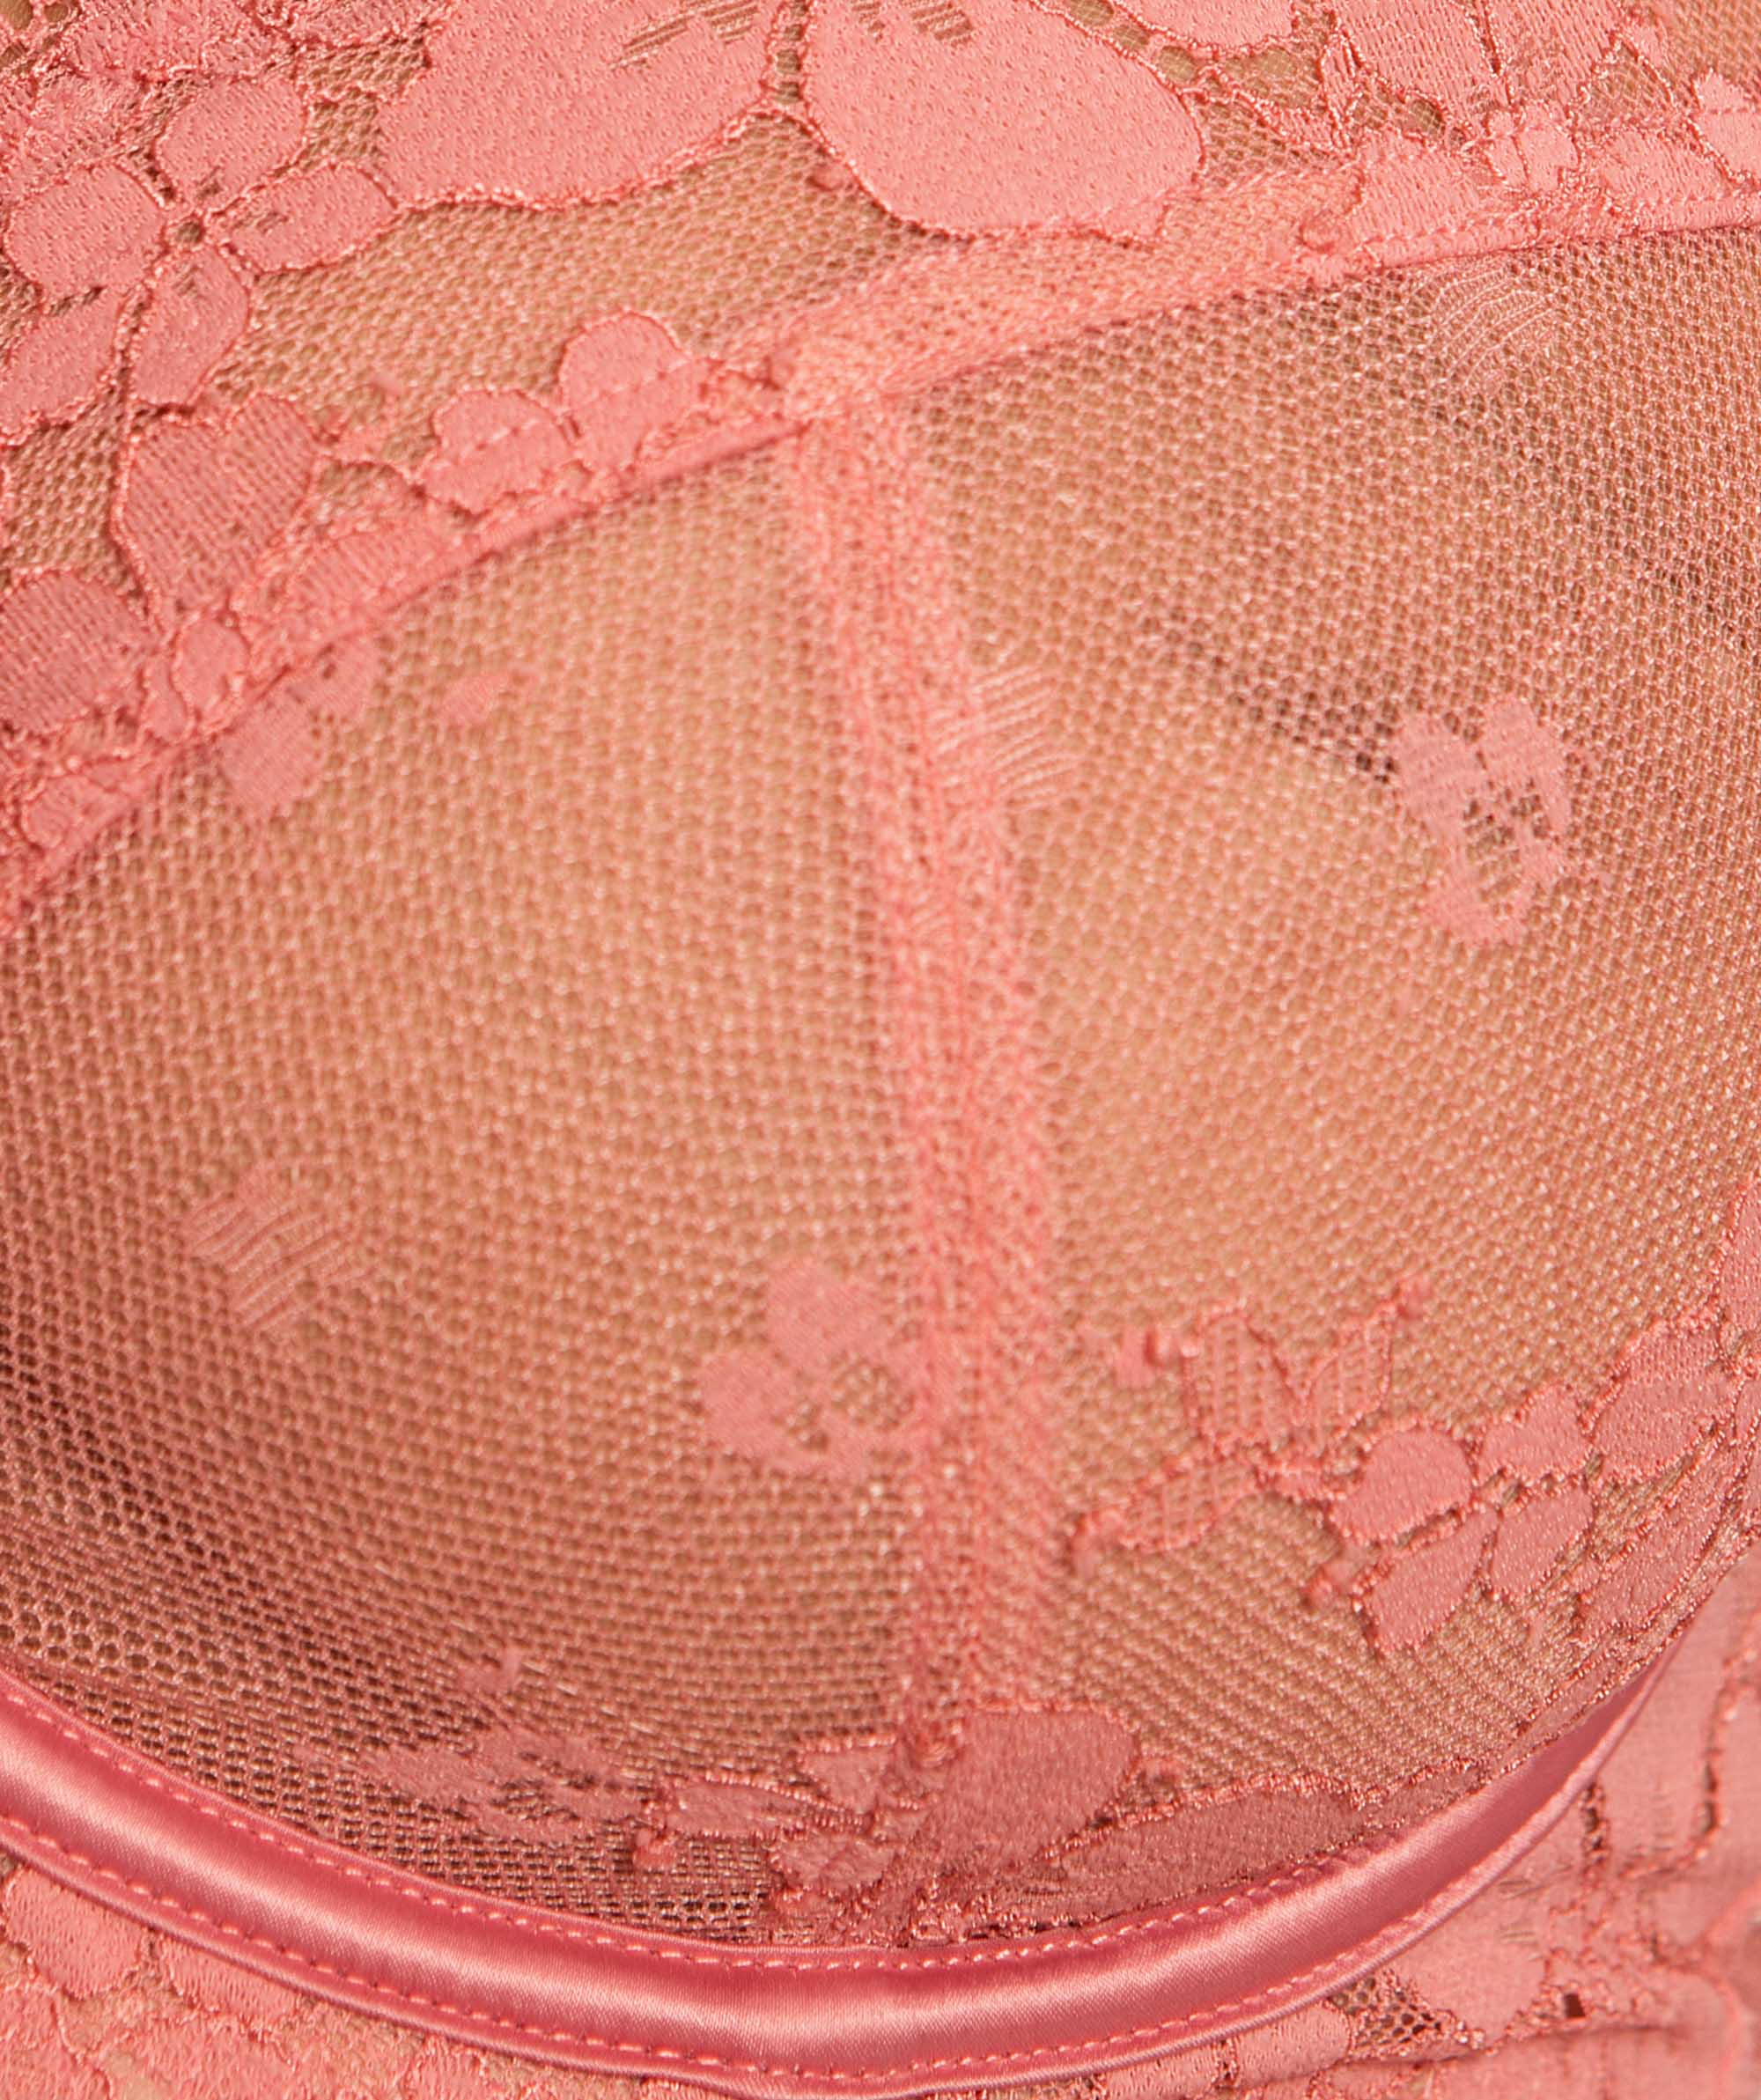 Amelia Full Cup Underwire Bra - Pink